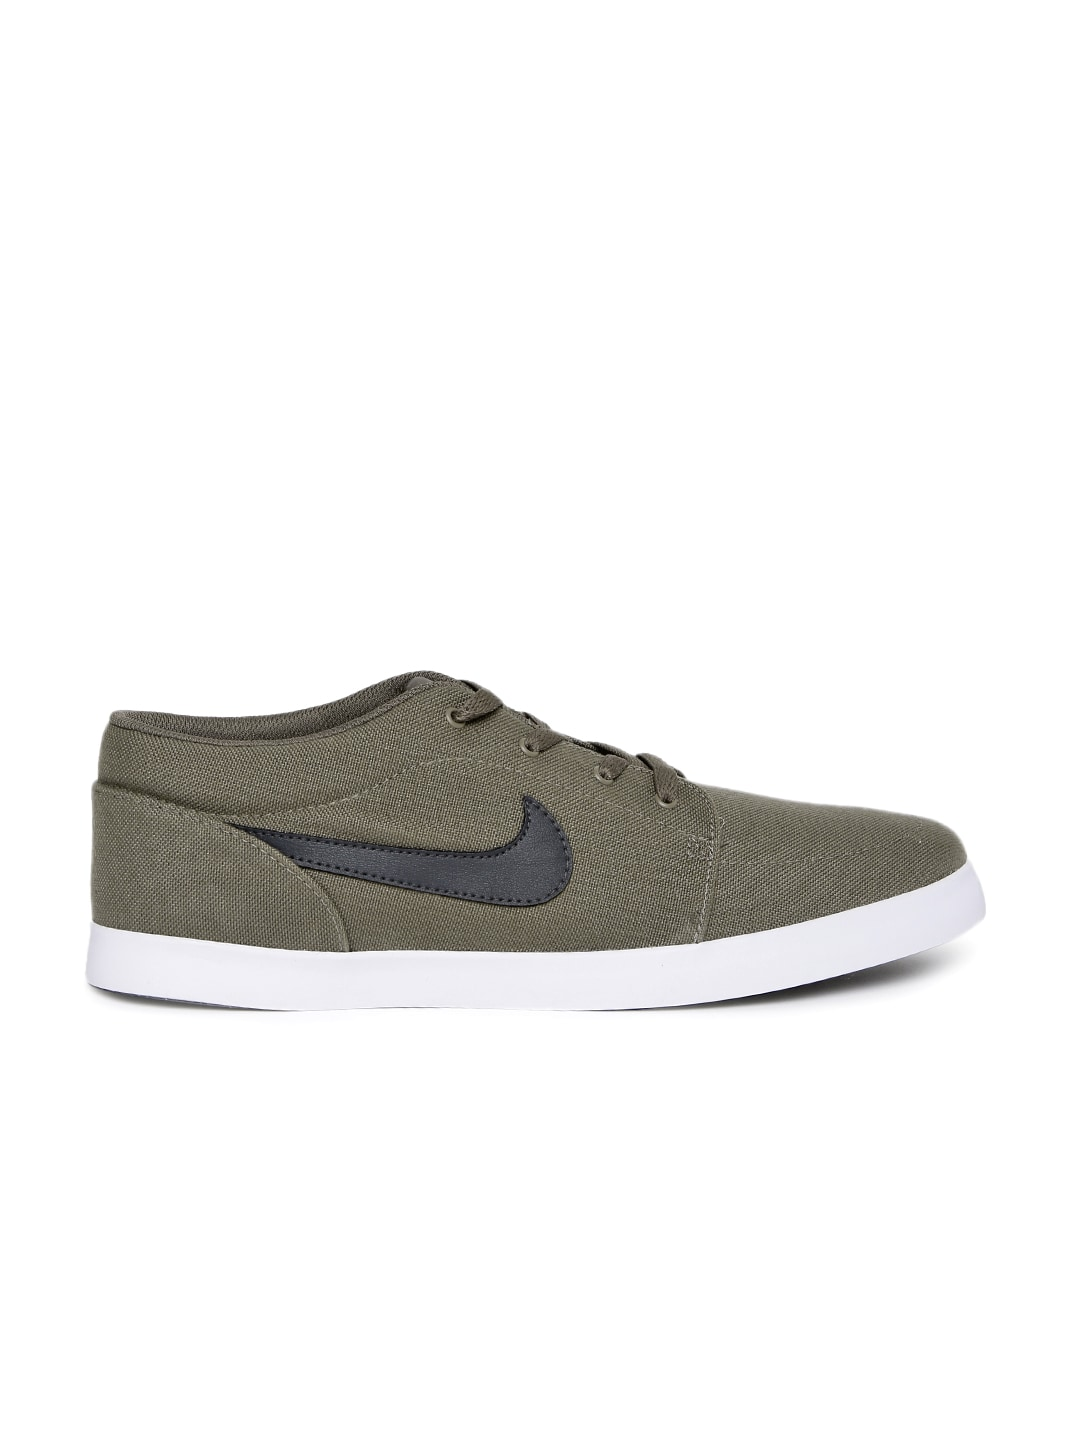 Nike Womens Casual Shoes Philippines